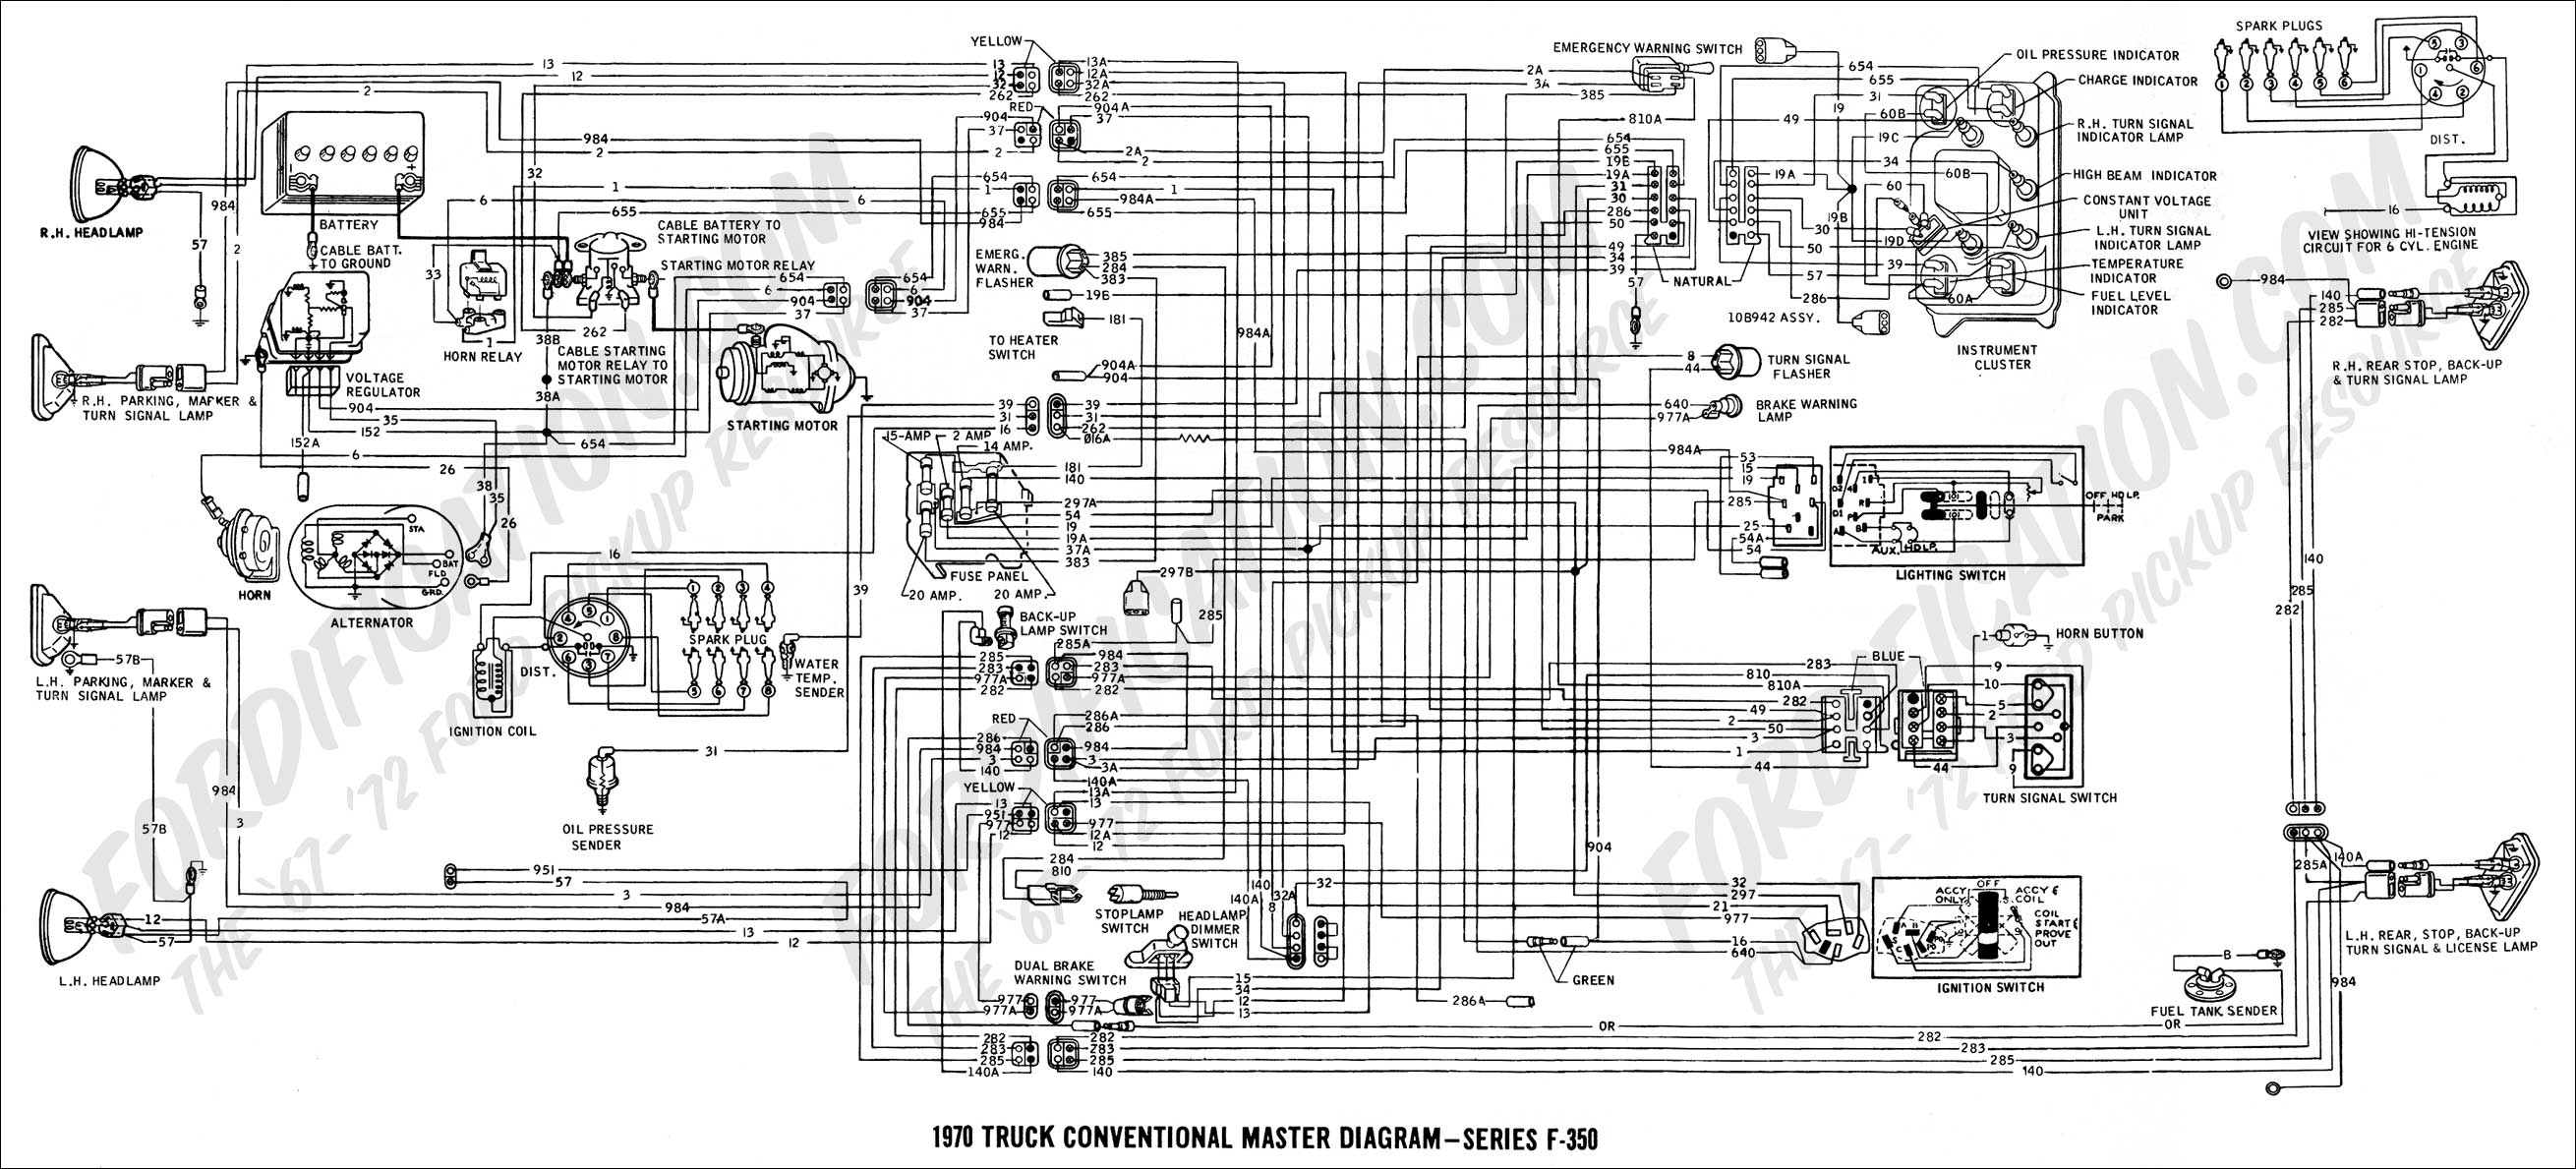 wiring diagram 70F350_master ford truck technical drawings and schematics section h wiring wiring diagrams for ford trucks at virtualis.co